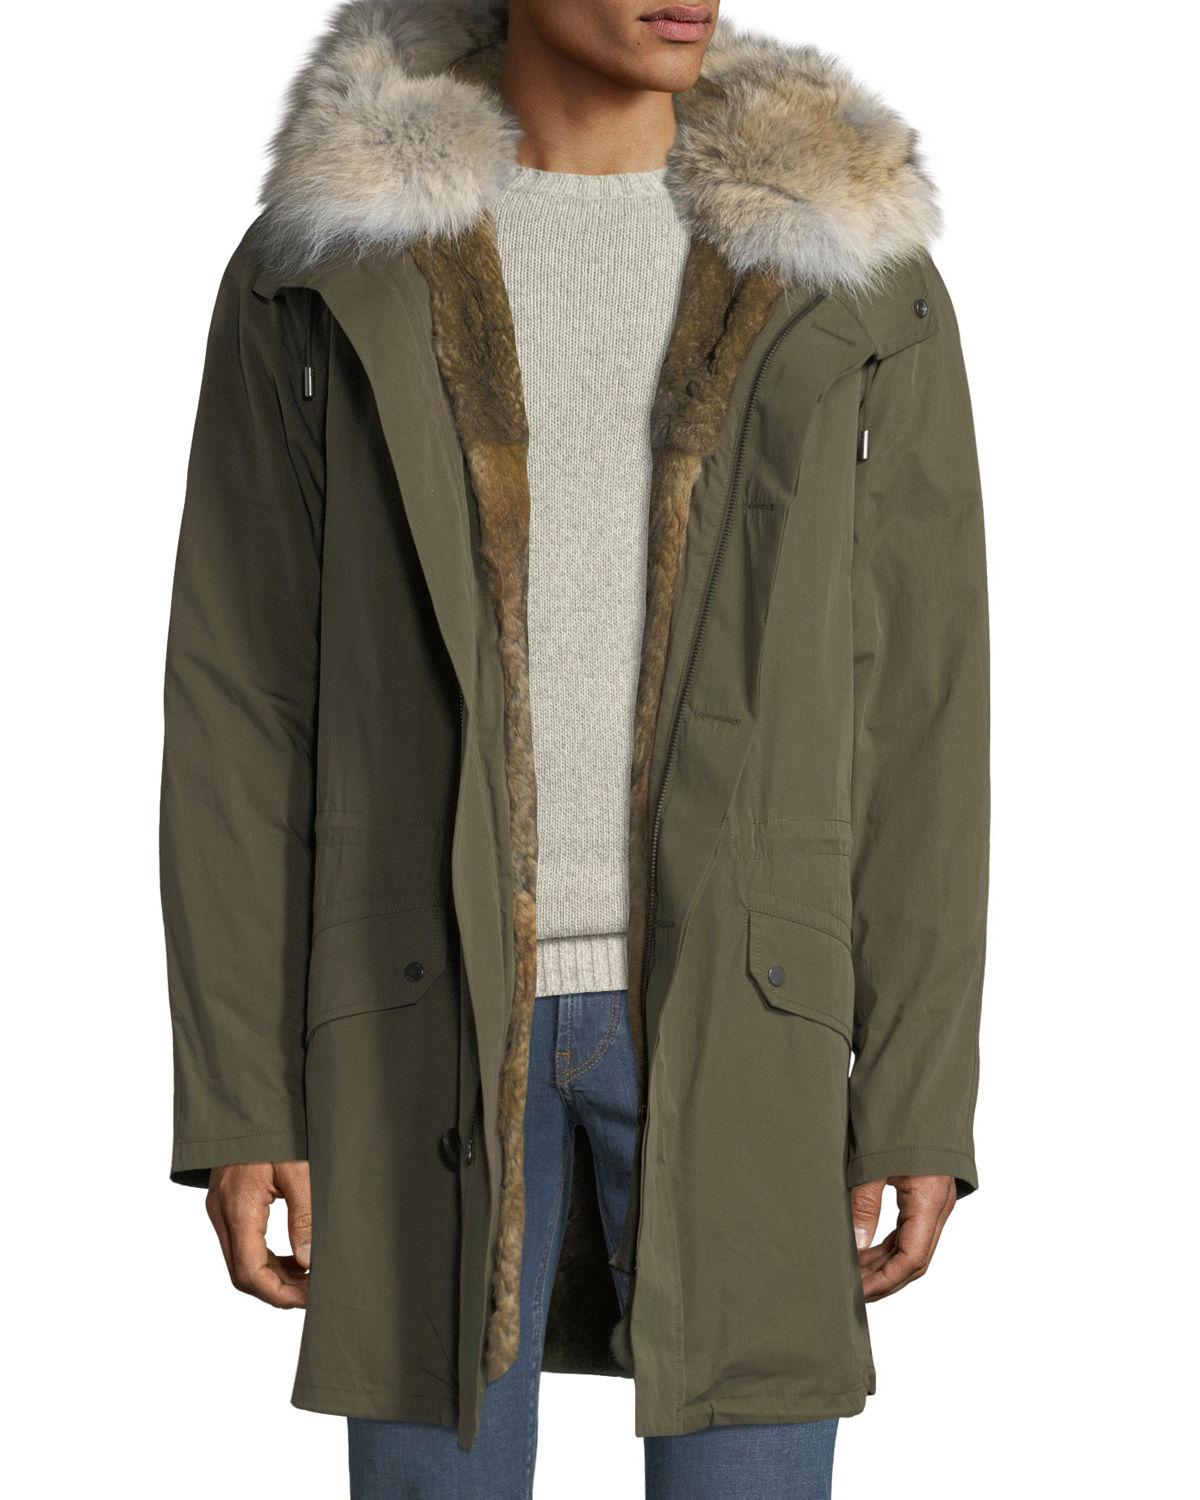 12041577daf8 Yves Salomon Men s Classic Long Fur-Trim Parka Coat In Green